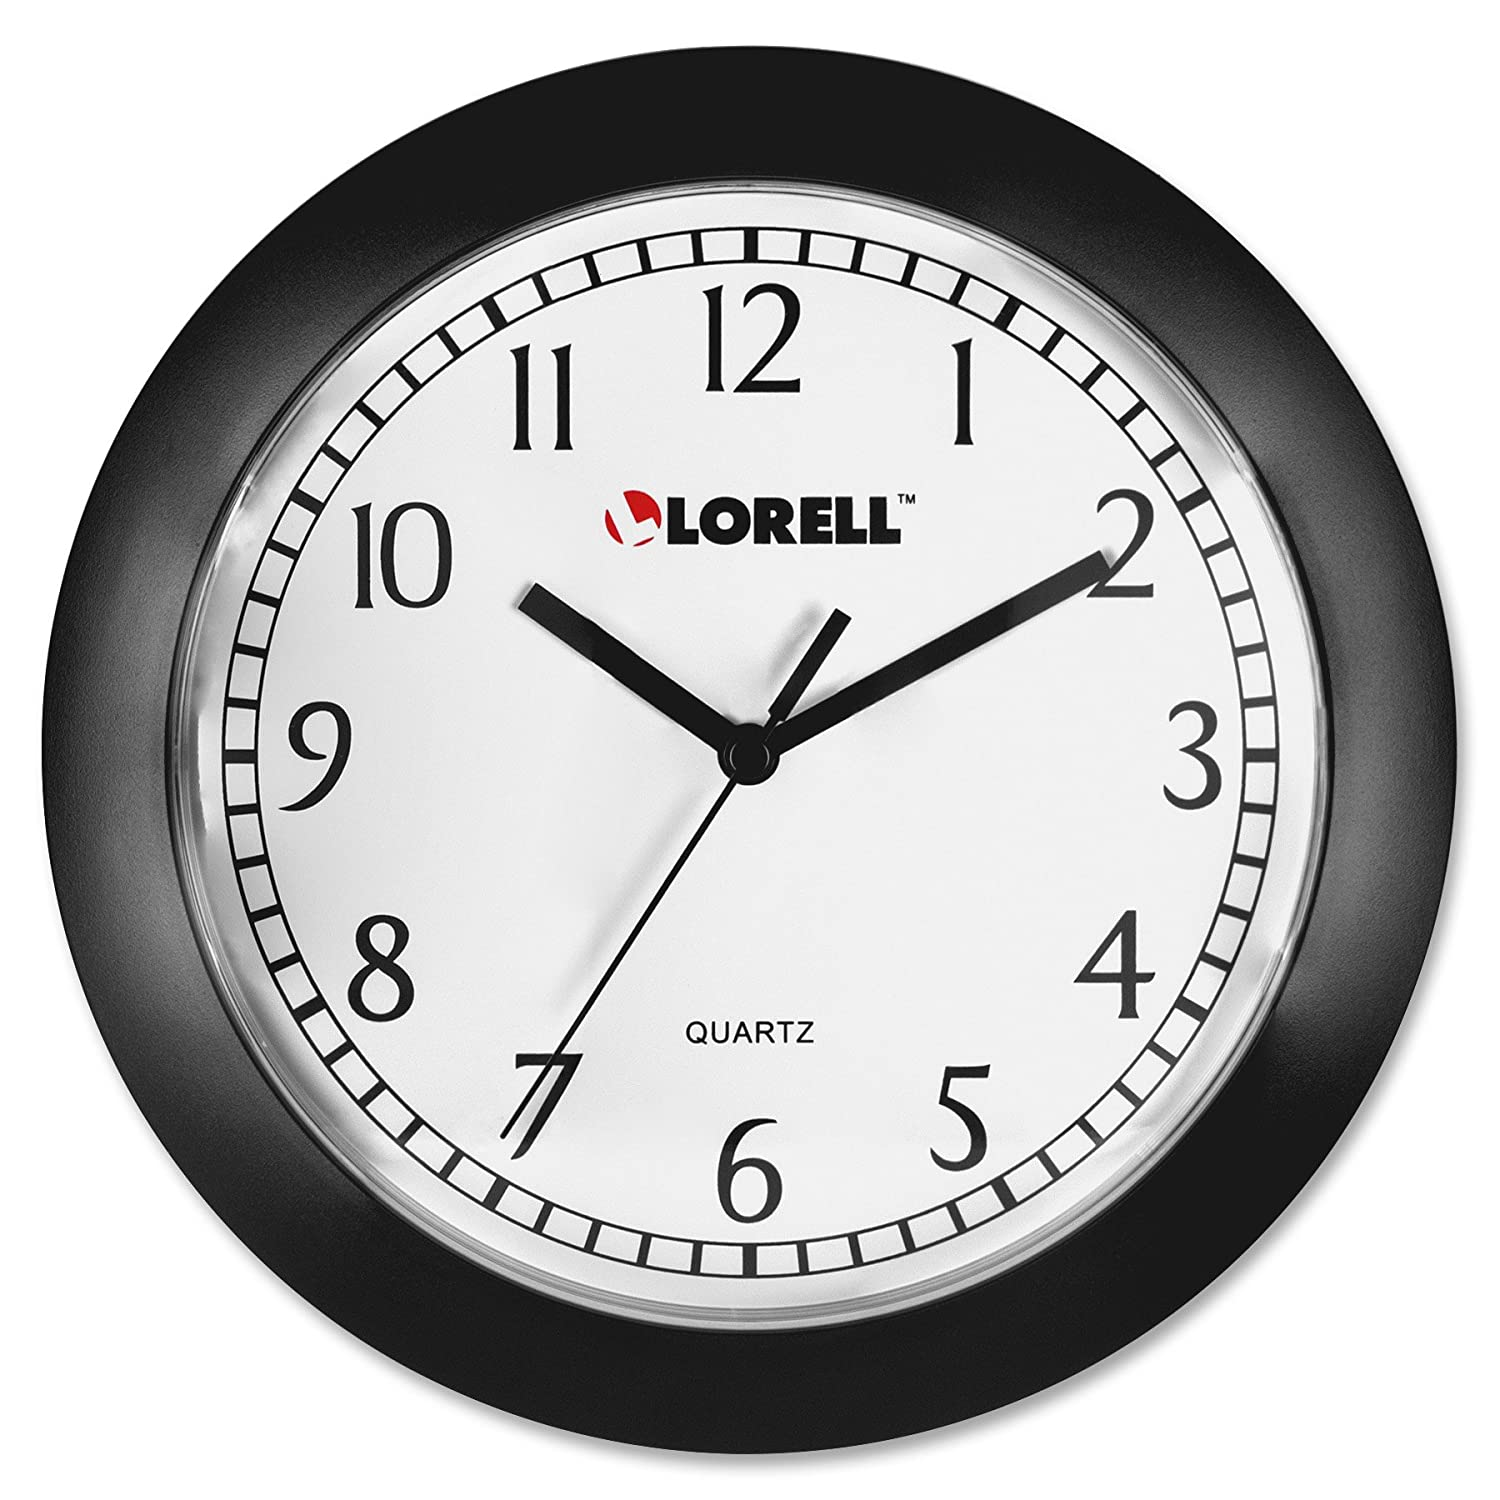 Lorell Wall Clock with Arabic Numerals, 9-Inch, White Dial/Black Frame S.P. Richards Company LLR60987